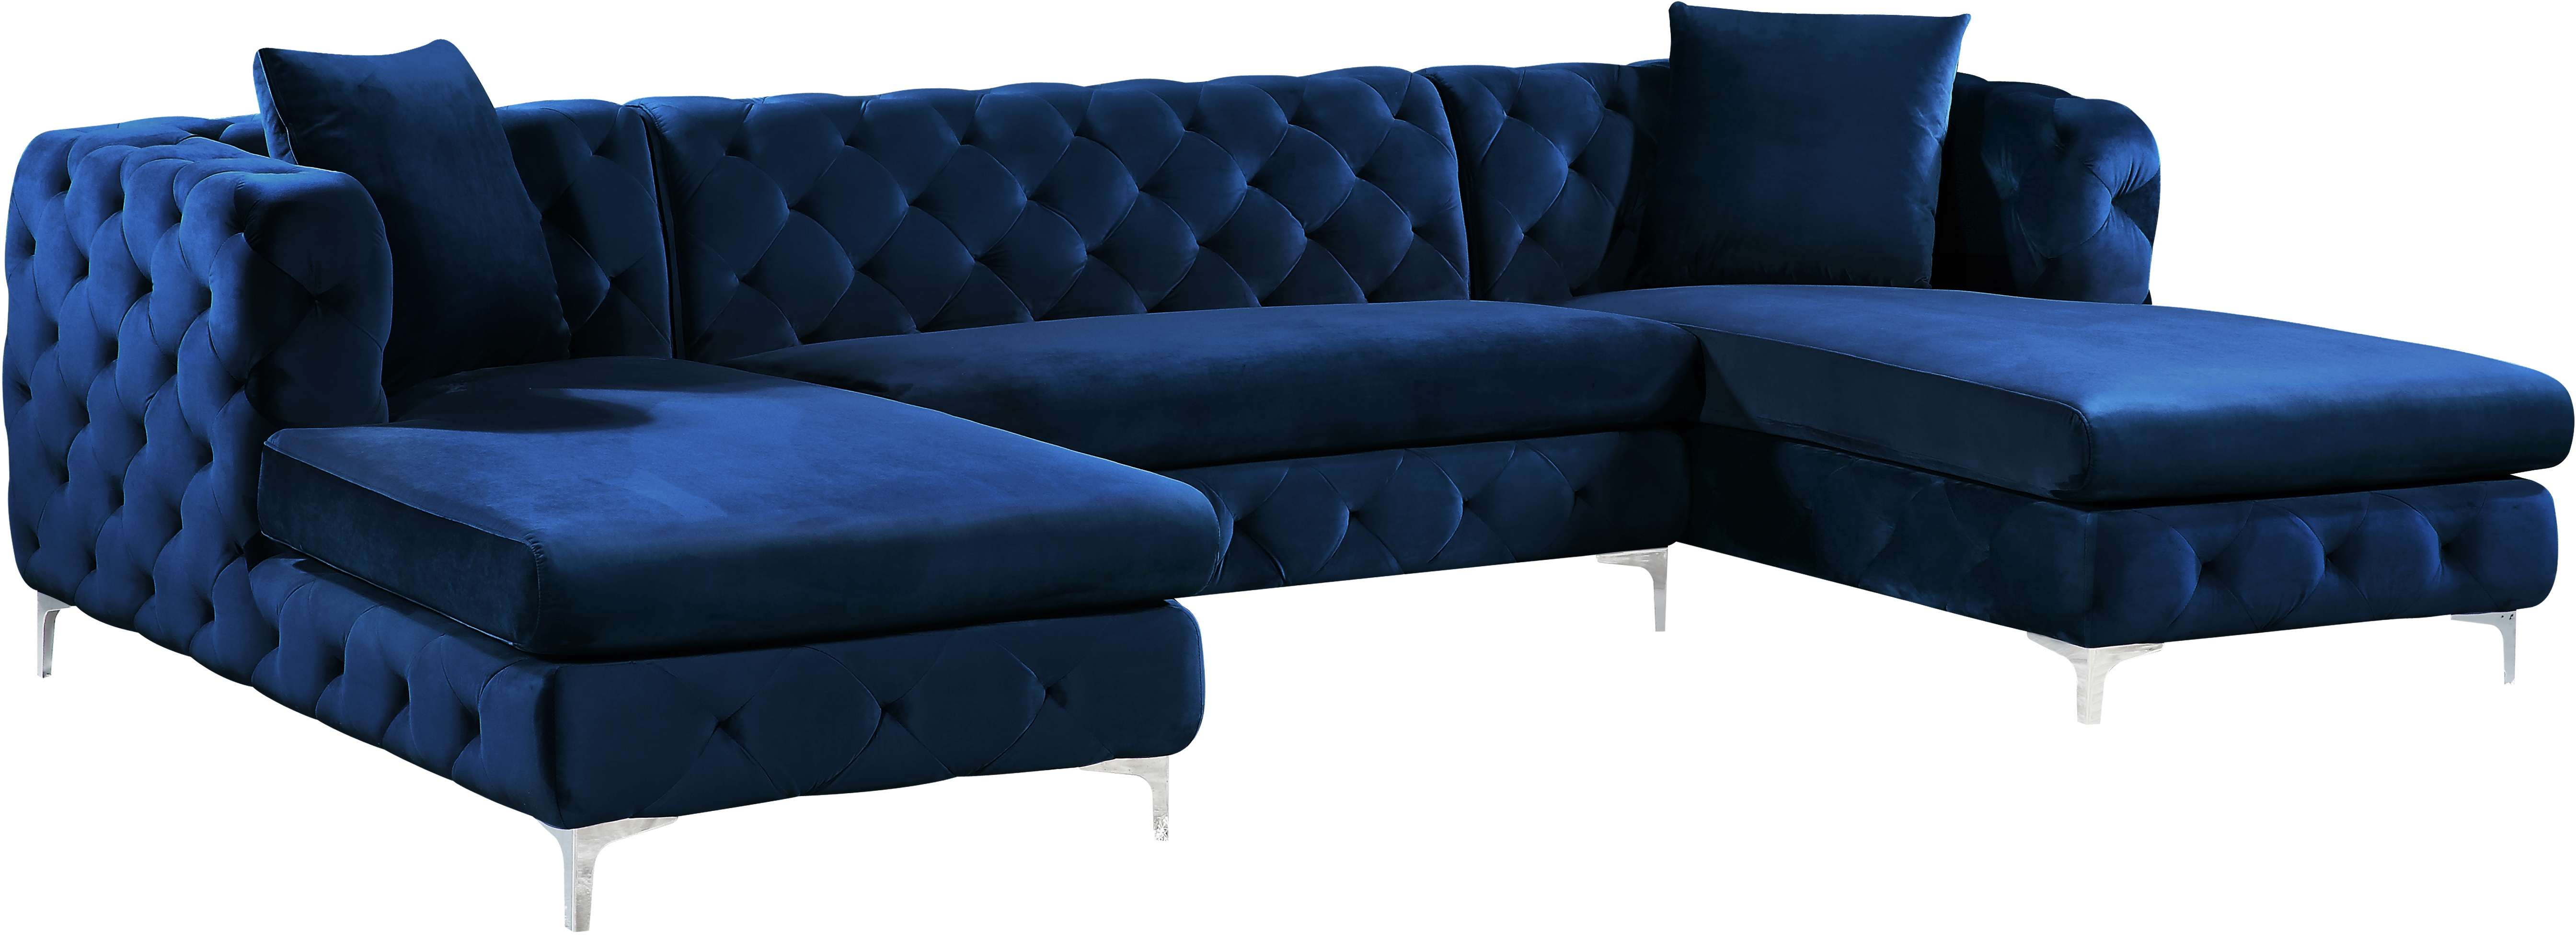 Meridian 664navy Sectional